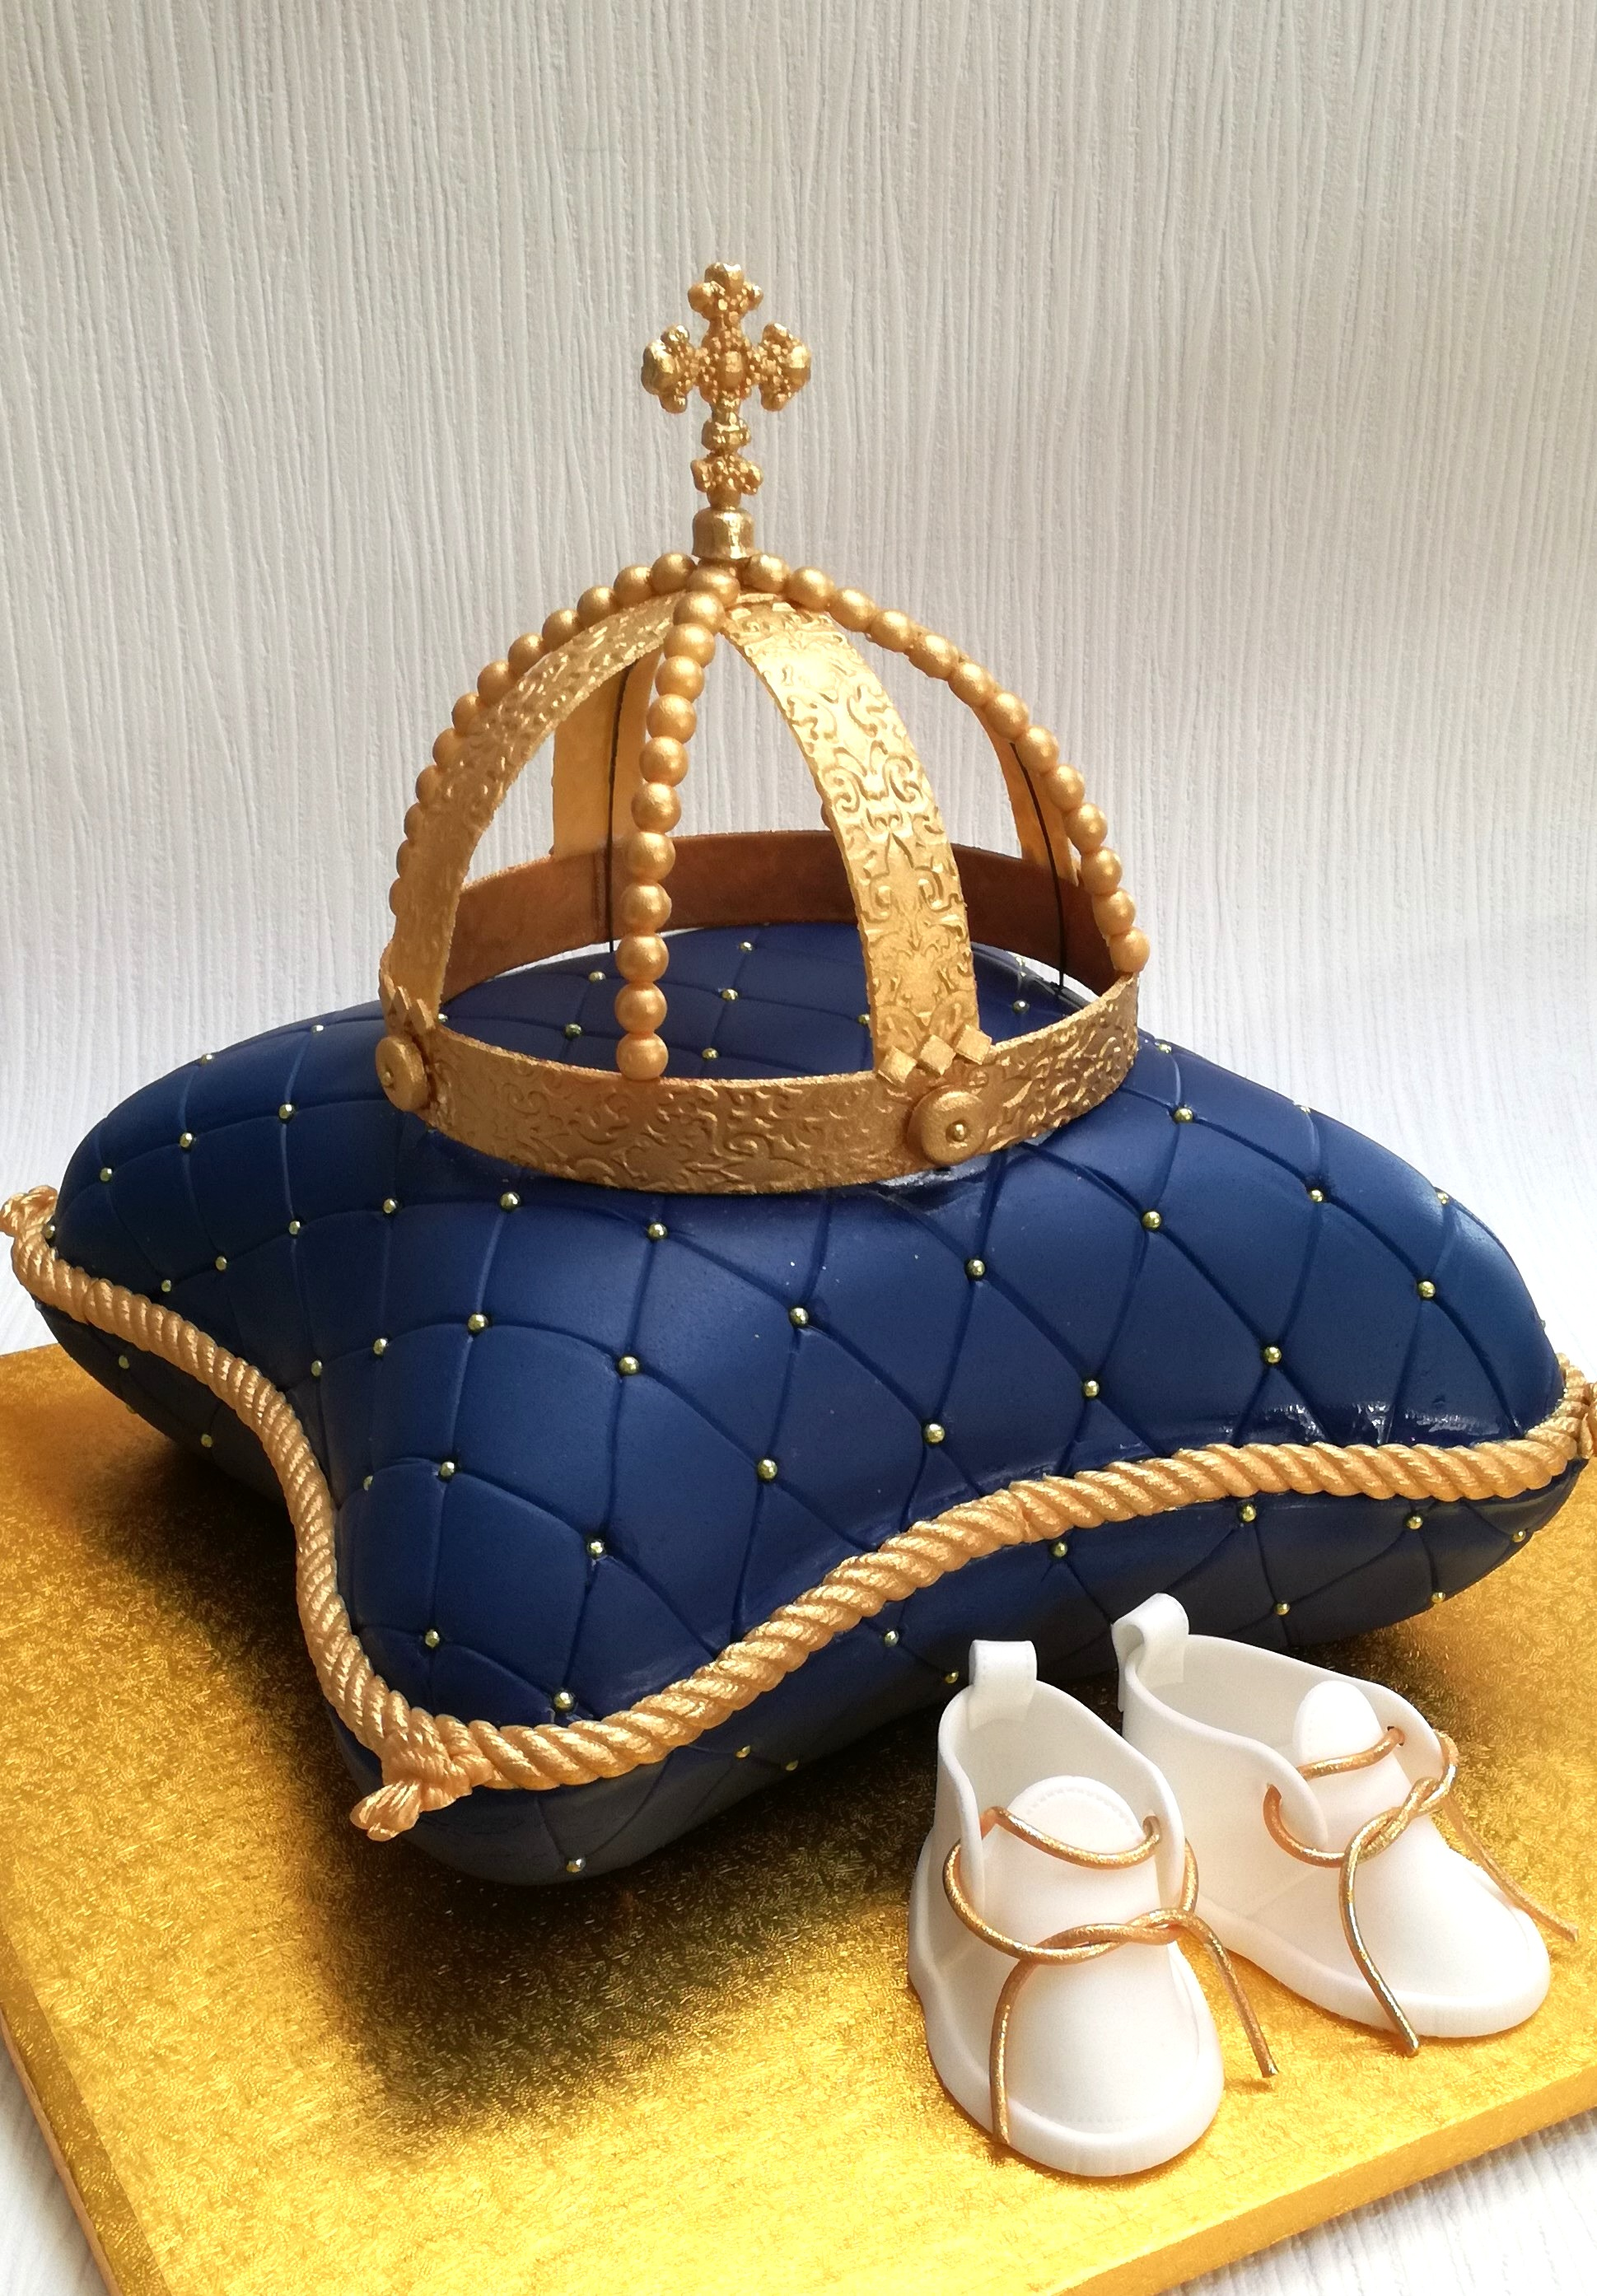 Quilted pillow cake with gold crown